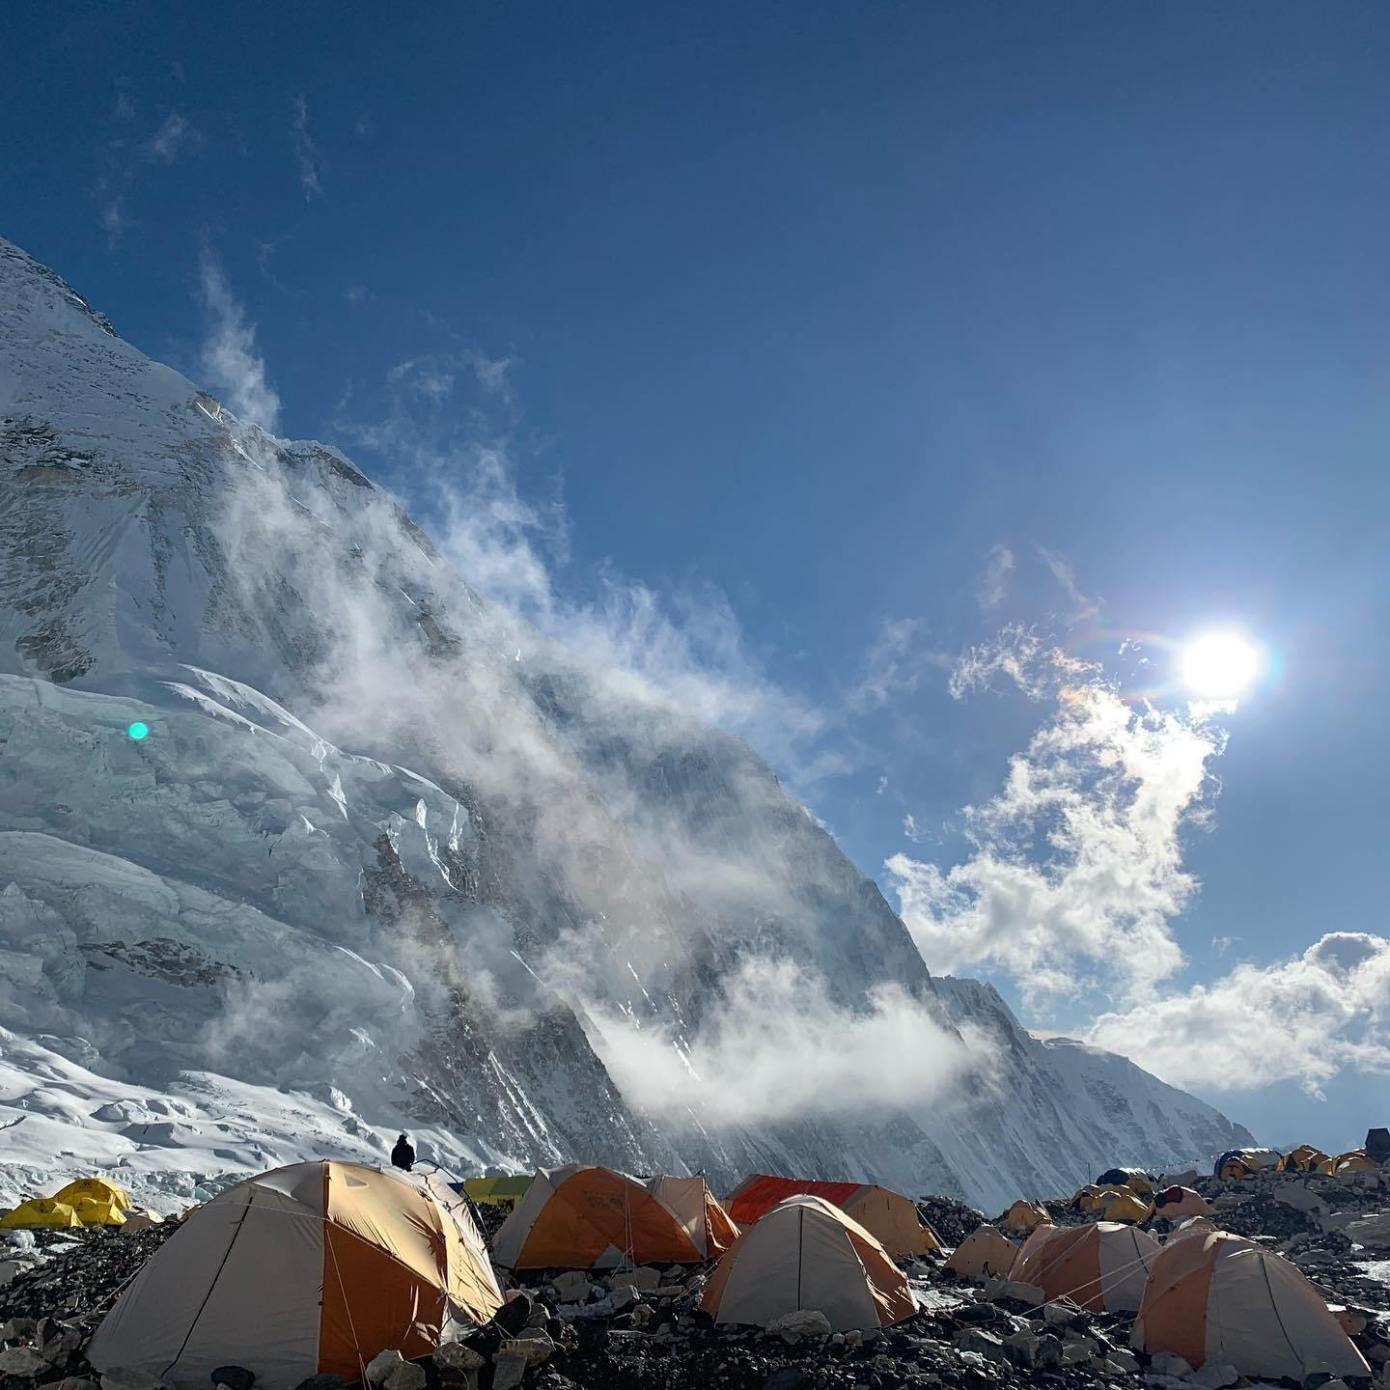 everest stream 2019